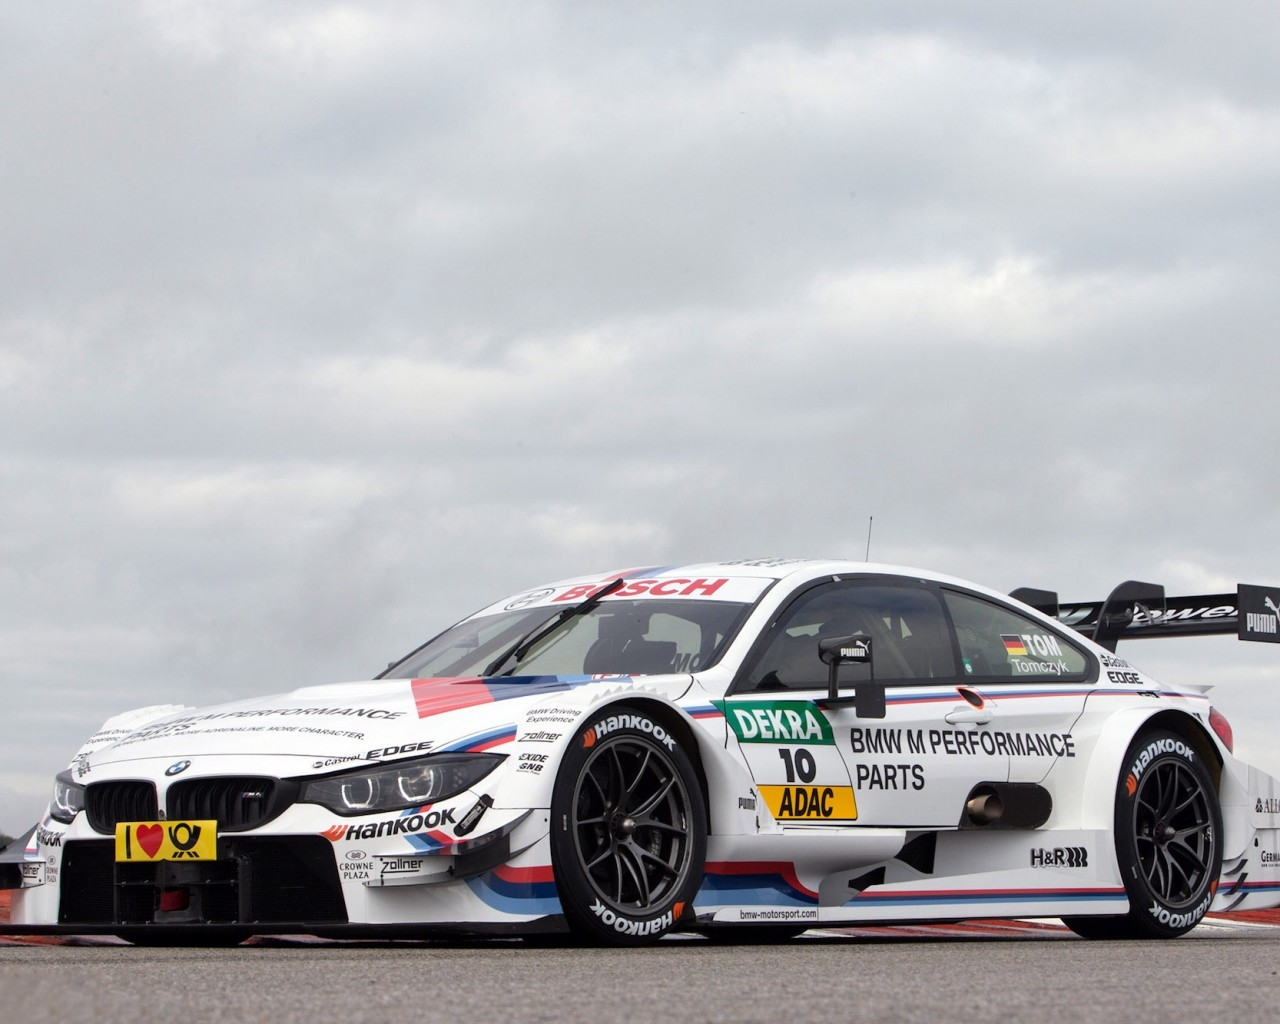 bmw-m-dtm-Picture-Bmw-M-Dtm-Cars-Images-within-Bmw-M-wallpaper-wp3601053